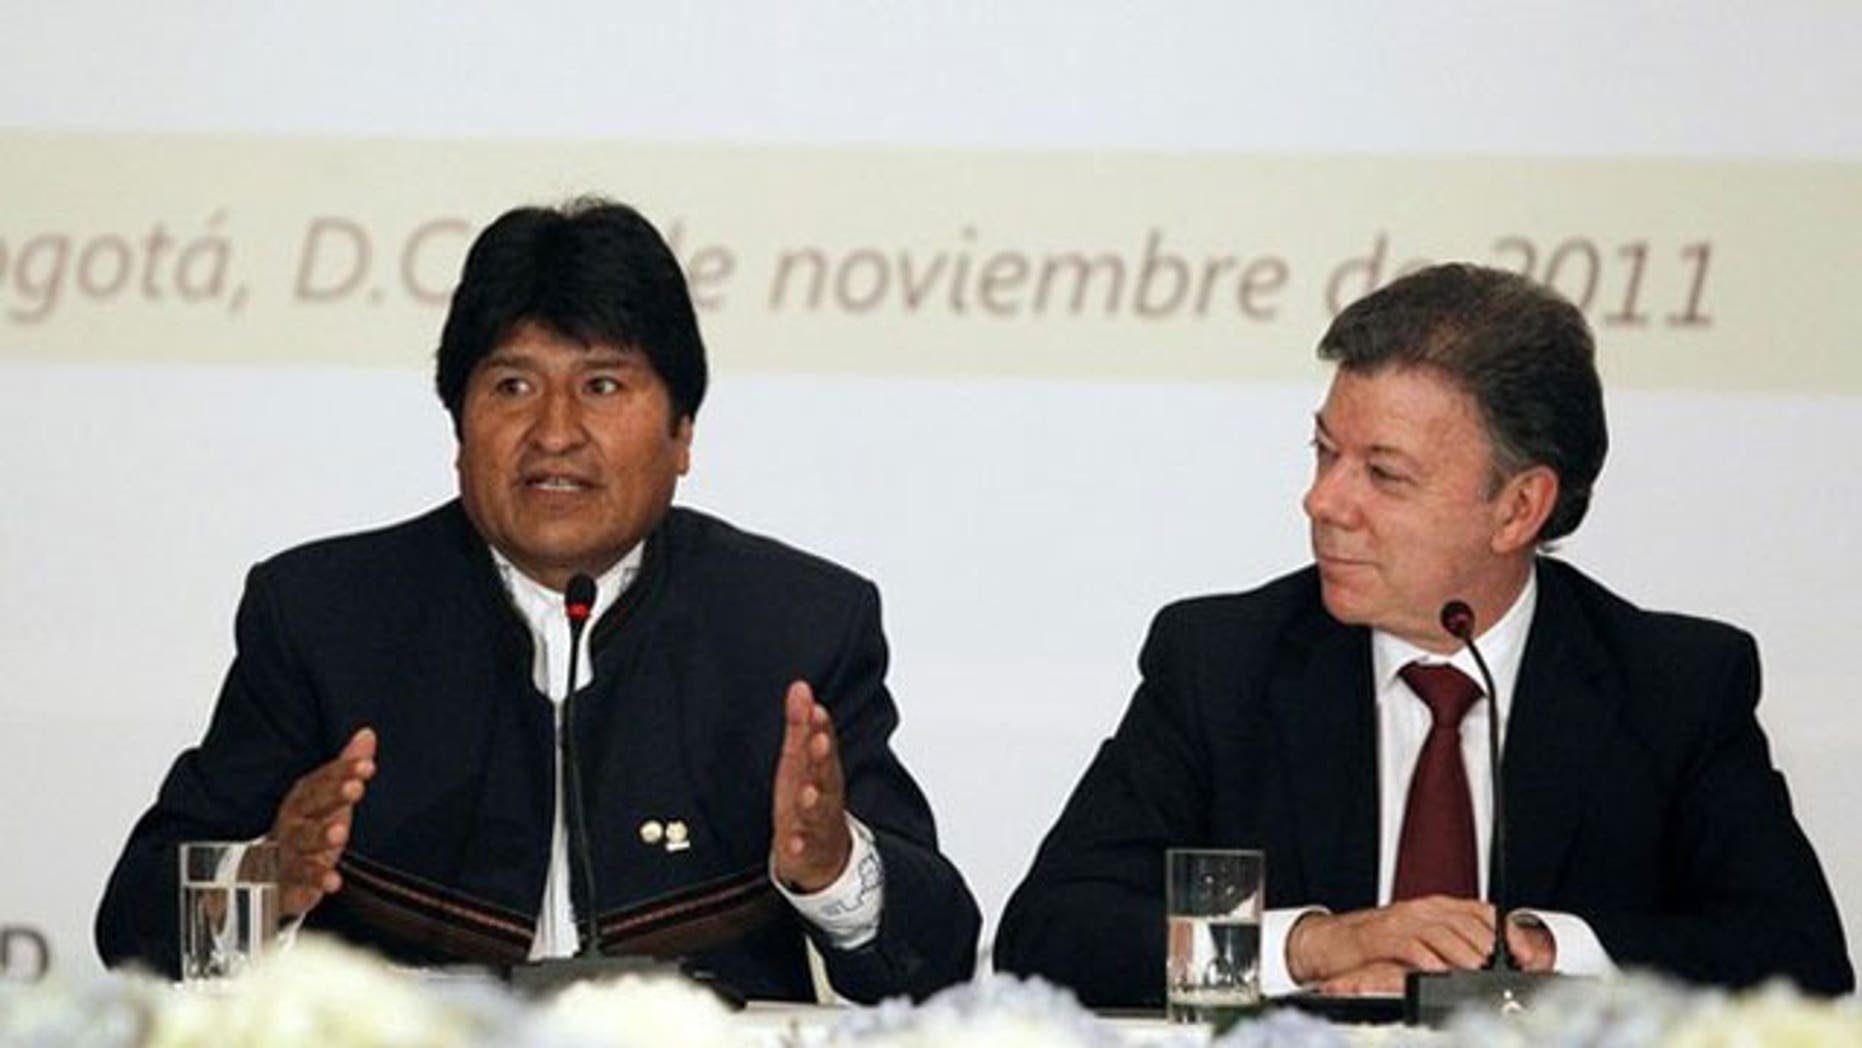 November 8, 2011: Bolivia's President Evo Morales (L) speaks as his Colombian counterpart Juan Manuel Santos listens during an extraordinary meeting of the Andean Community of Nations (CAN) at Narino Palace in Bogota.